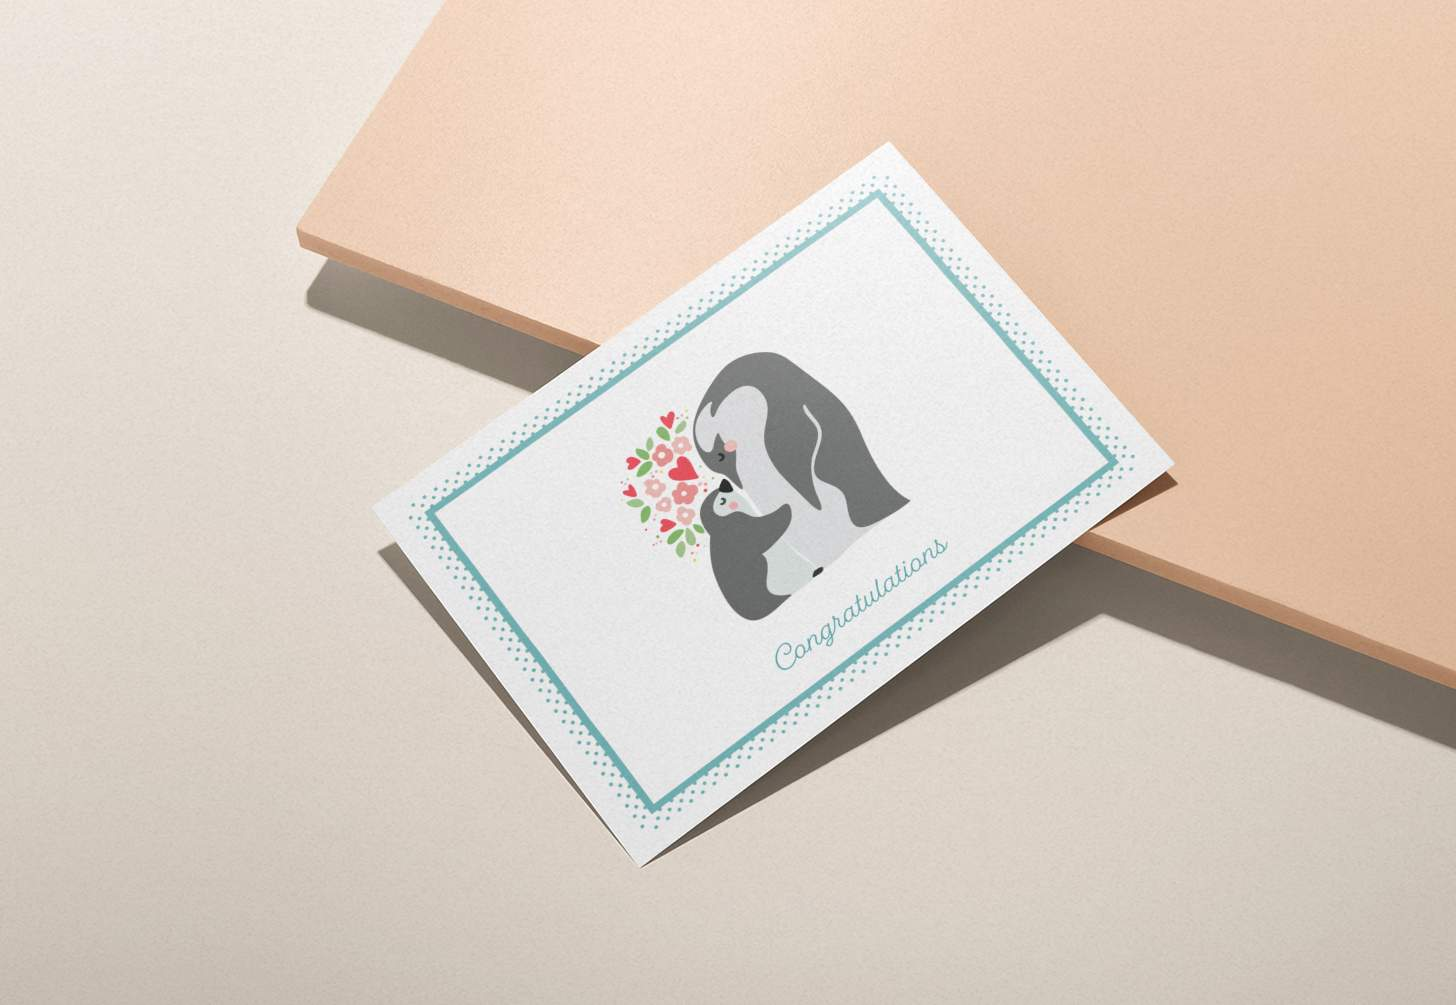 Mother and baby penguin design on a pink background